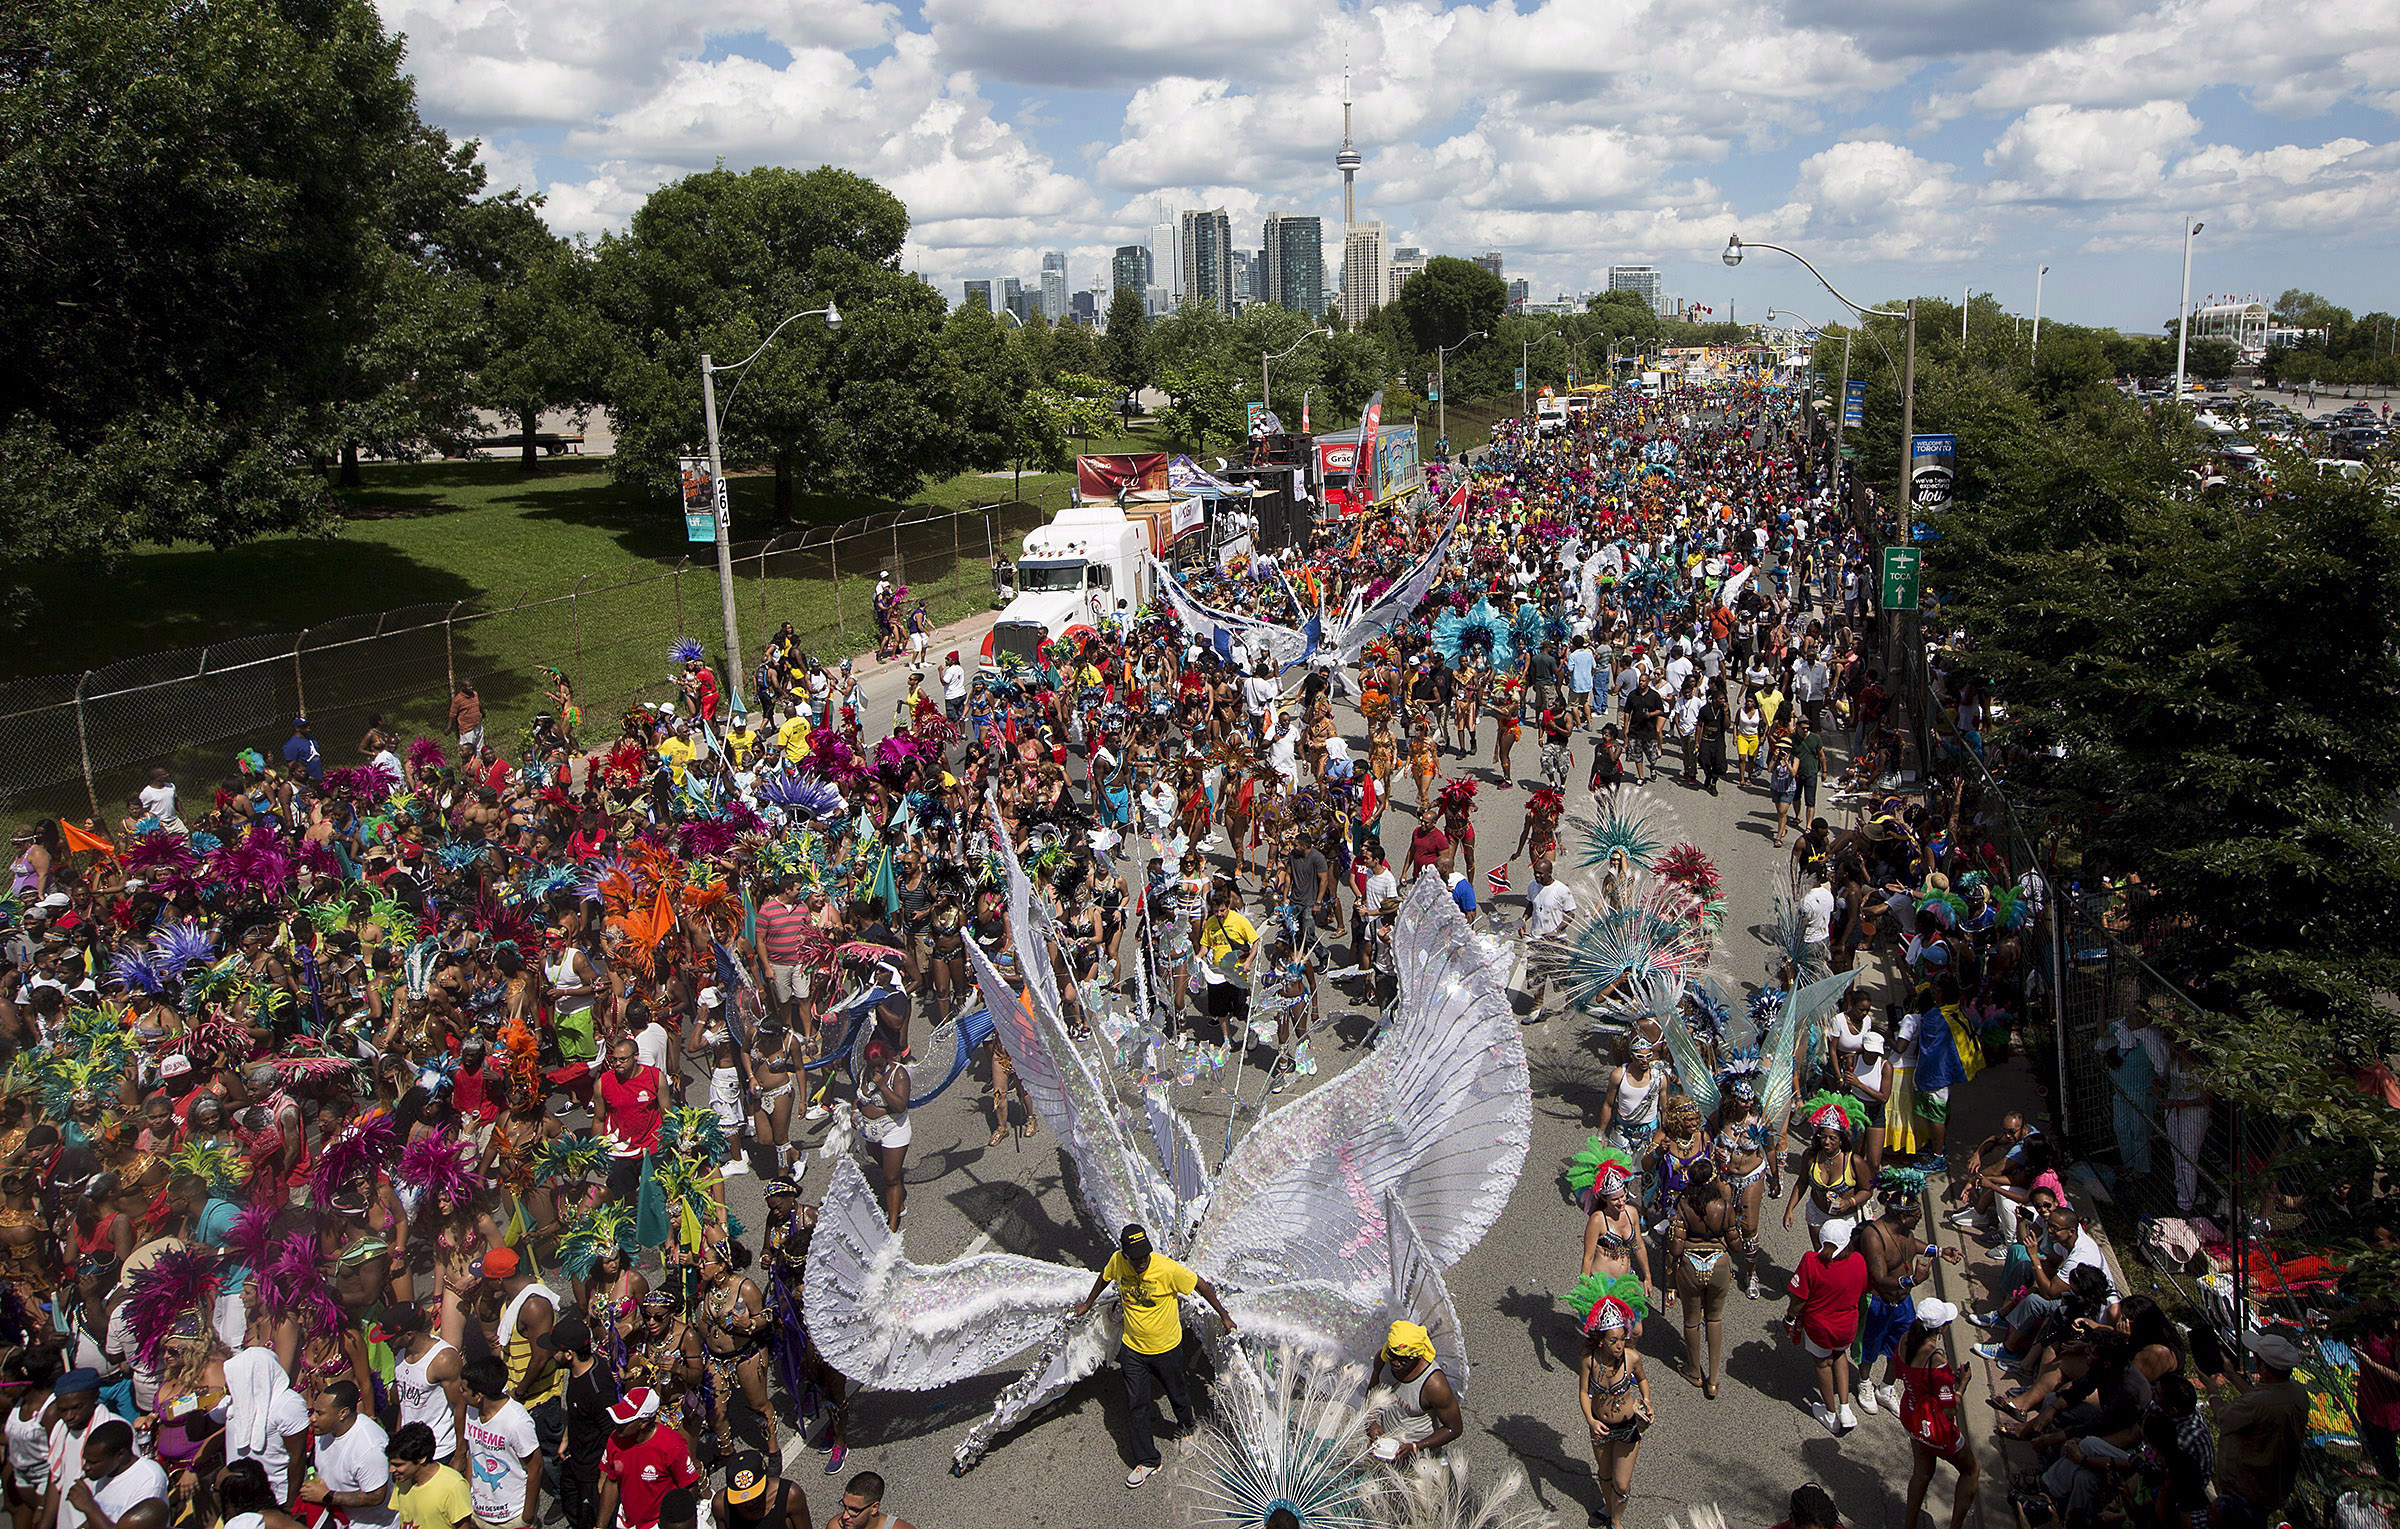 Paraders march down Lakeshore Boulevard at the Caribbean Carnival in Toronto on Saturday, August 3, 2013. THE CANADIAN PRESS/Michelle Siu